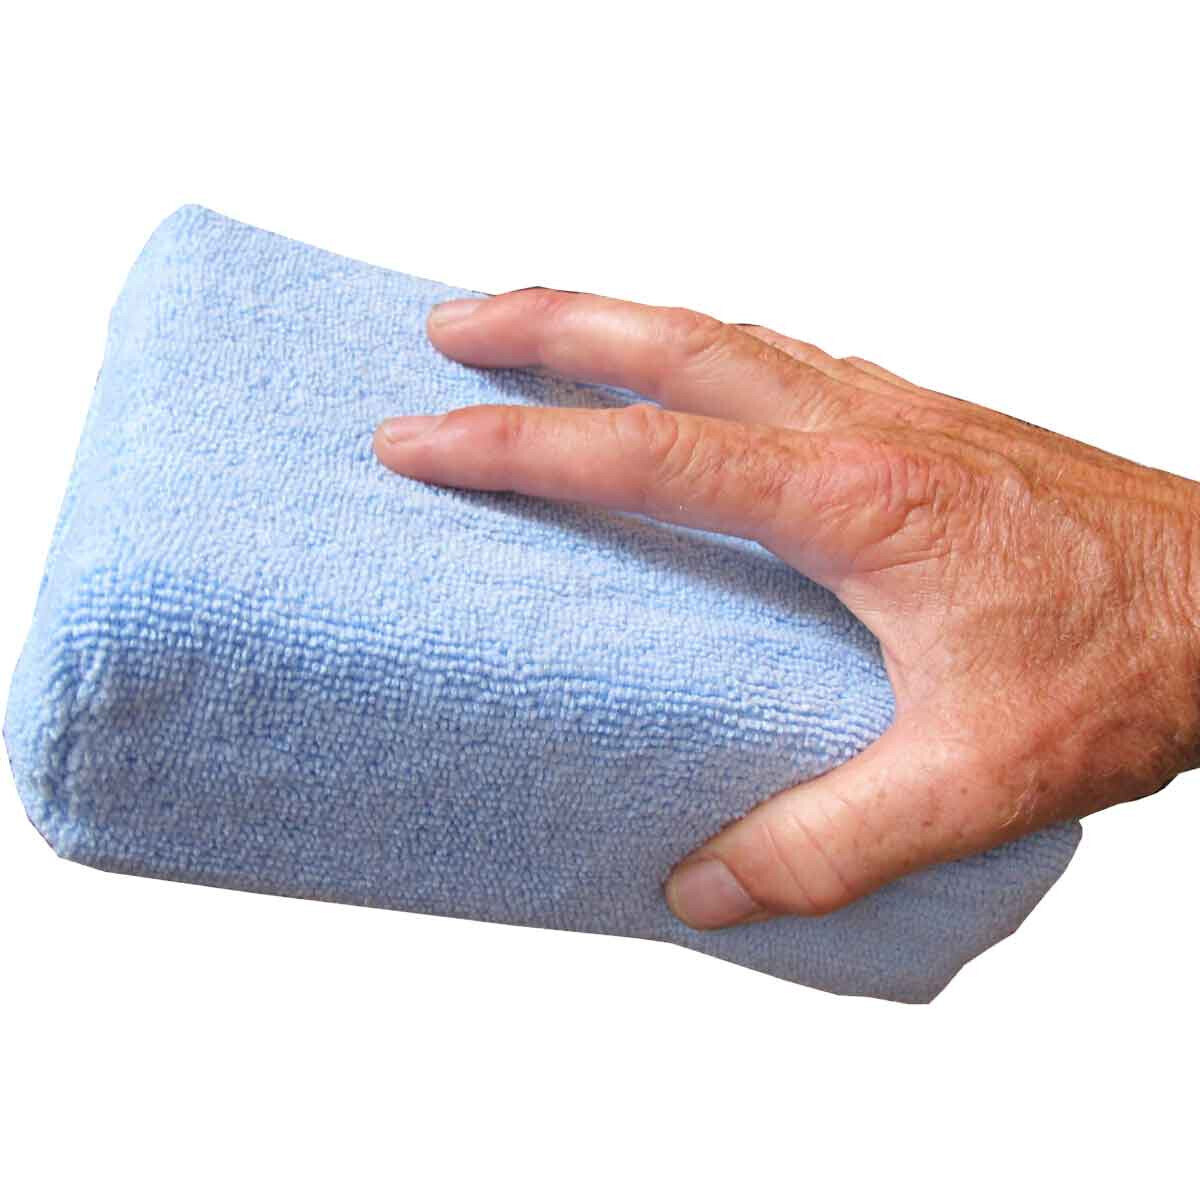 This microfiber sponge can be tossed in the washing machine for a fresh, clean sponge time after time